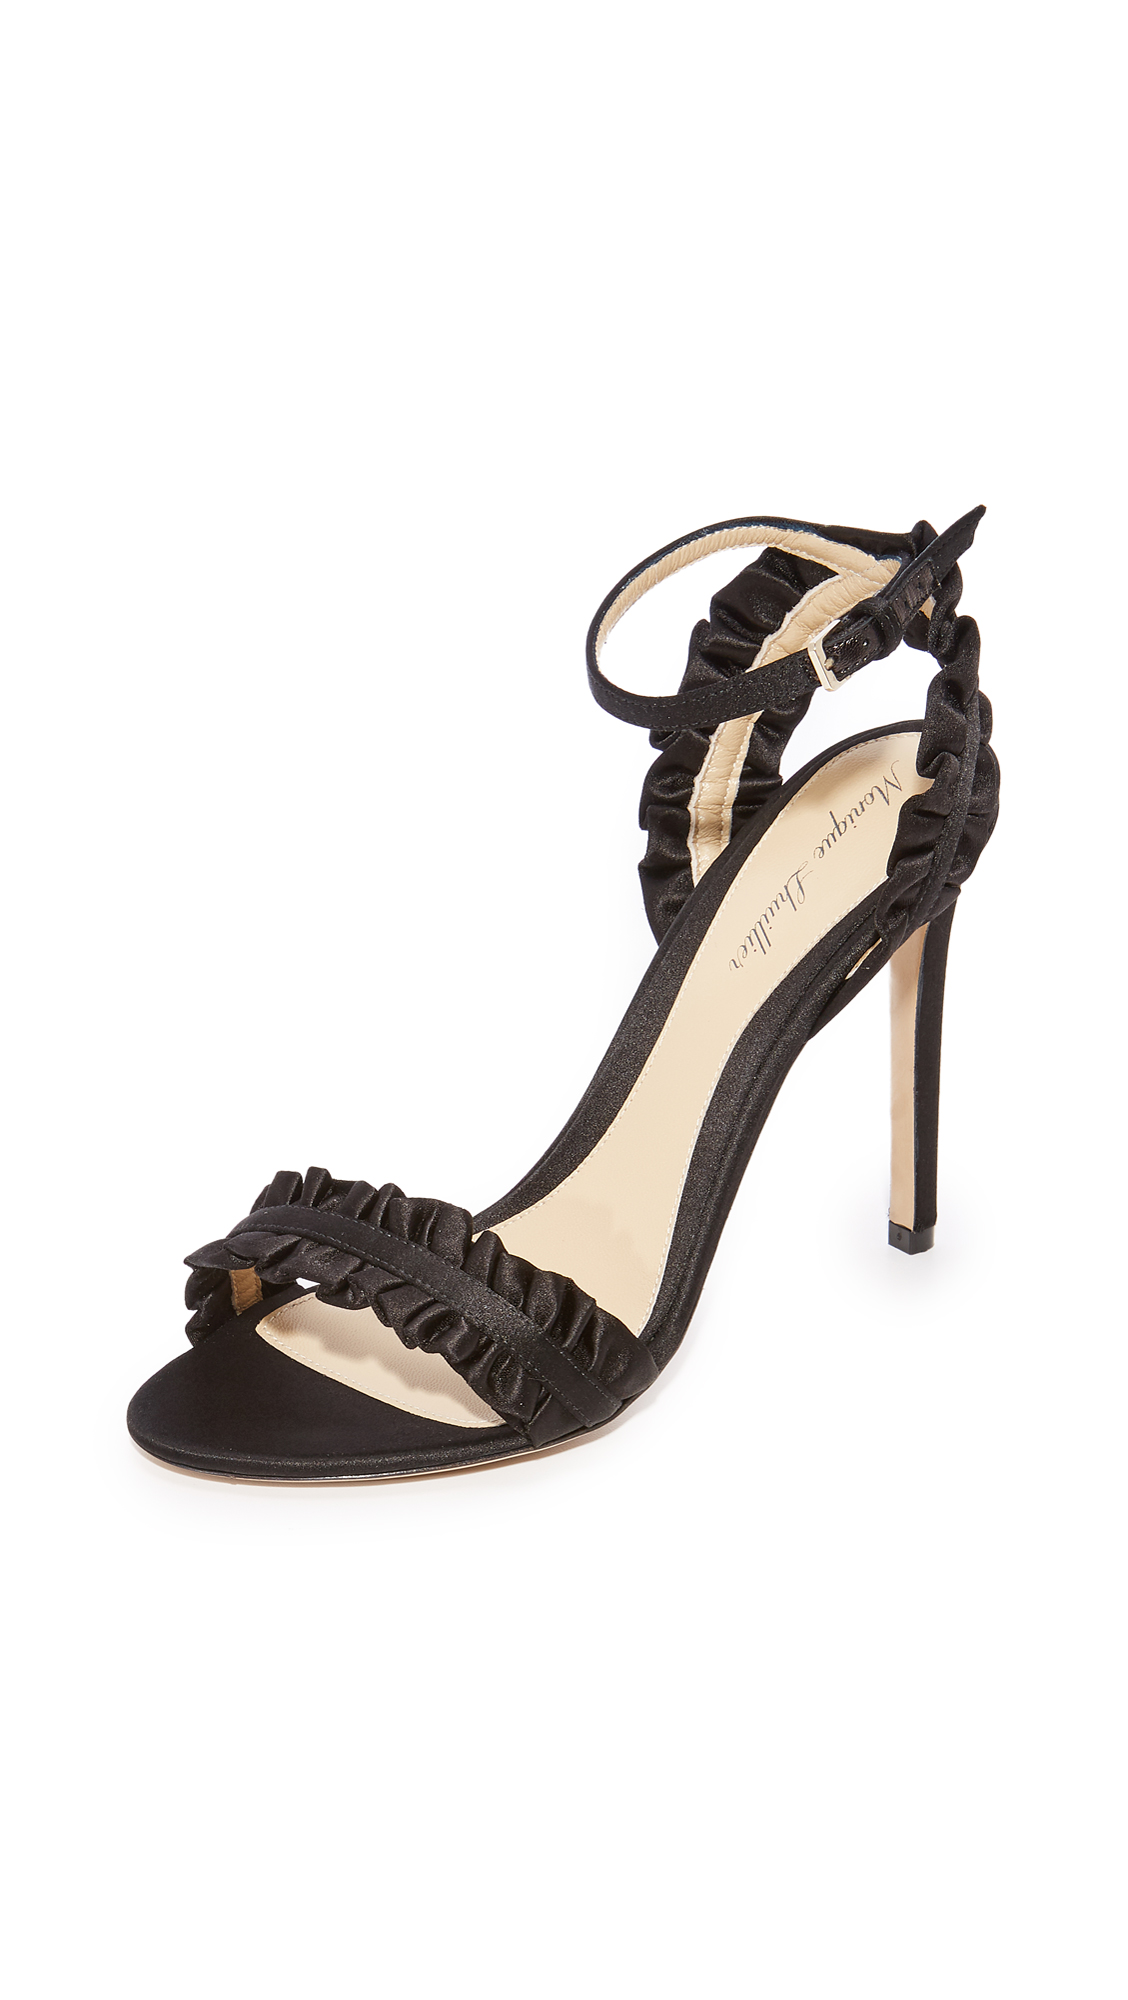 Monique Lhuillier ESME Ankle Strap Sandals - Noir